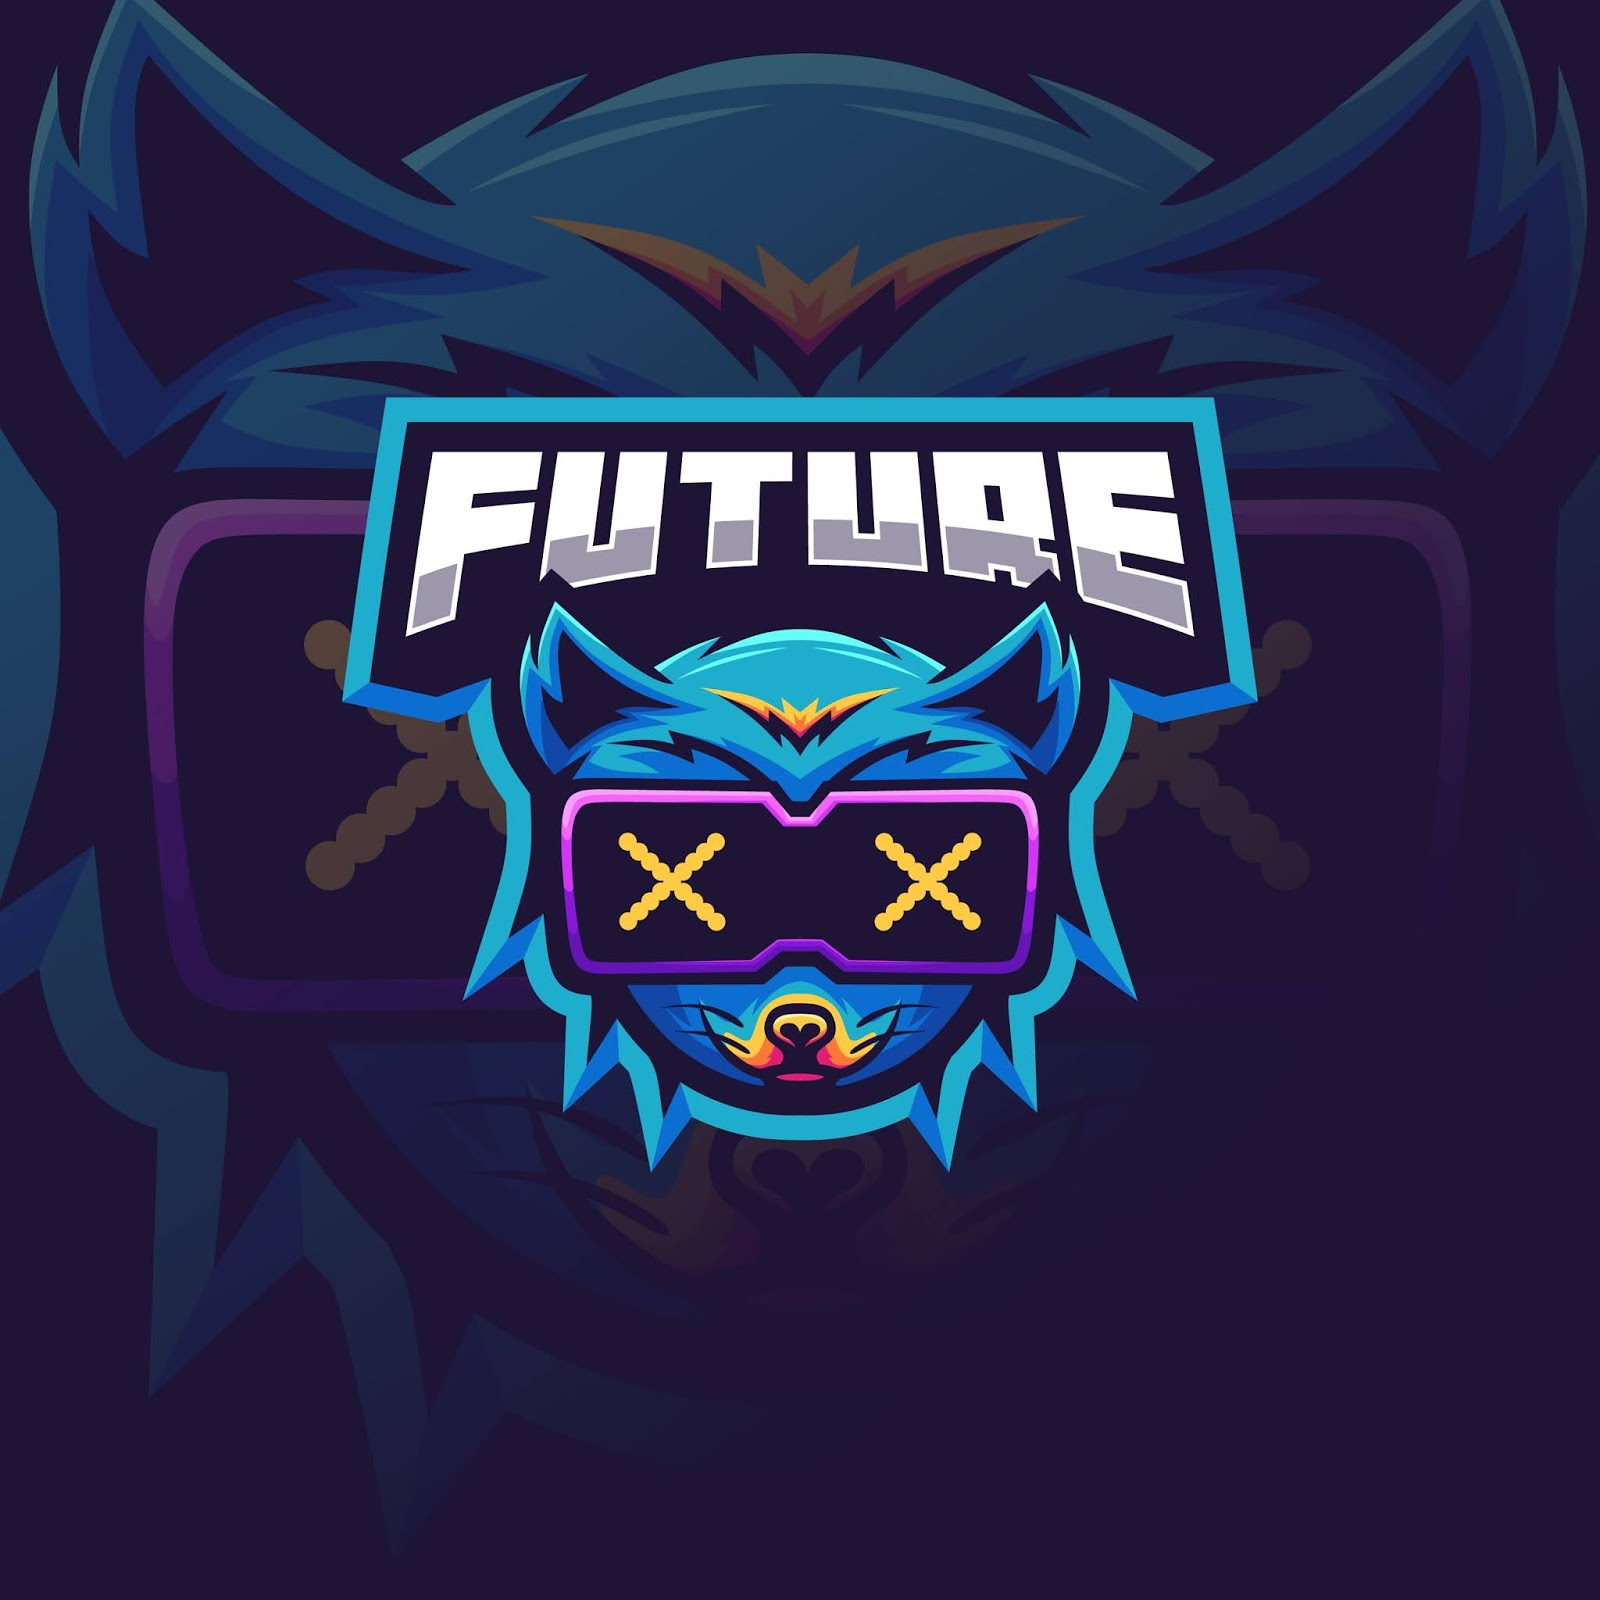 Futuristic Fox Logo Esport Free Download Vector CDR, AI, EPS and PNG Formats